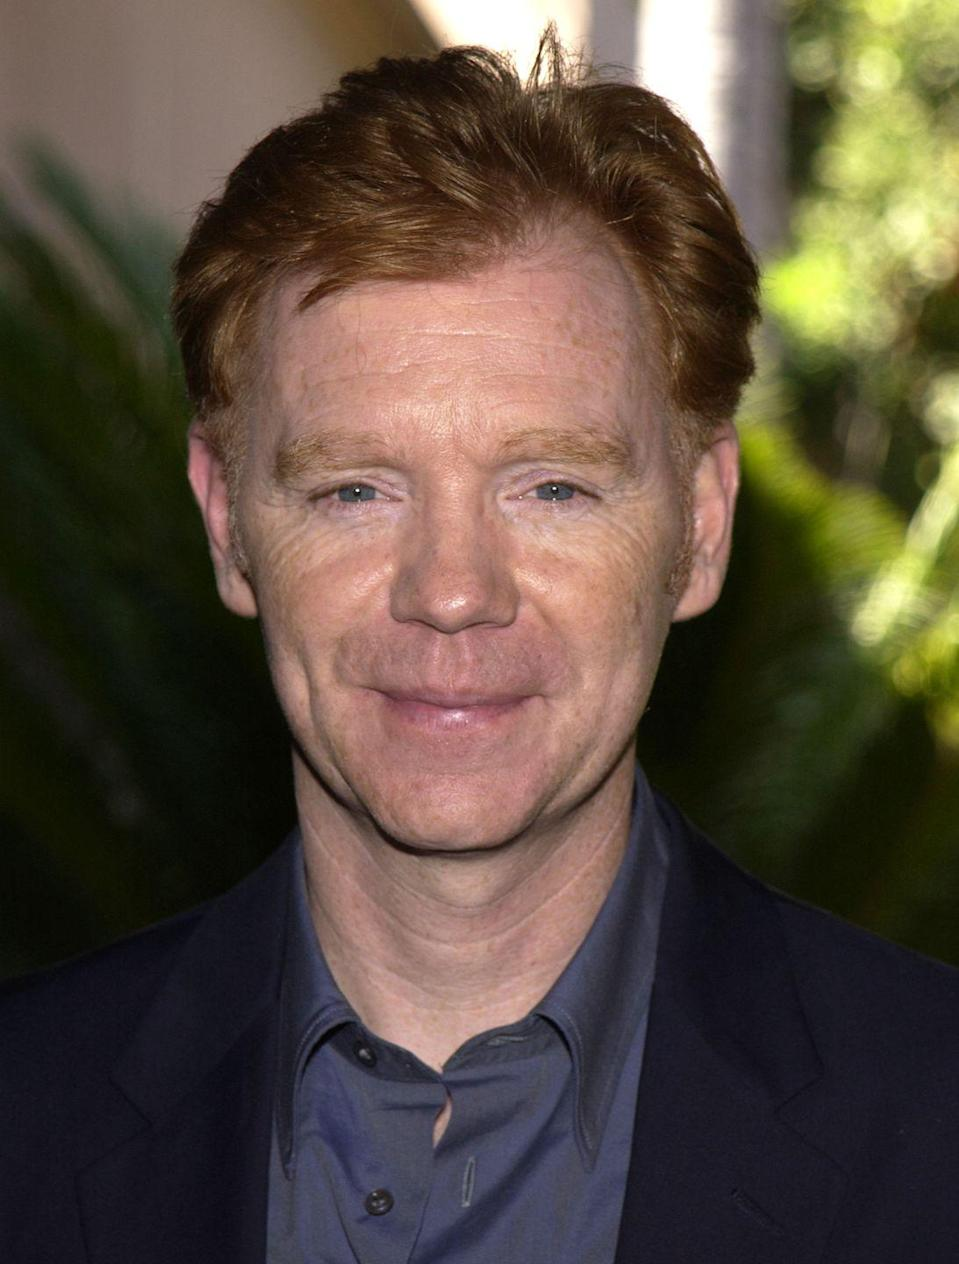 "<p>The actor was one of the main stars on the primetime police drama, but that didn't keep him from walking away when the <a href=""https://tvline.com/2016/08/18/david-caruso-nypd-blue-exit-controversy-steven-bochco-memoir/"" rel=""nofollow noopener"" target=""_blank"" data-ylk=""slk:network didn't meet his contract demands"" class=""link rapid-noclick-resp"">network didn't meet his contract demands</a> after the show's successful first season. He left the show in season 2 and later signed onto<em> CSI: Miami</em>. </p>"